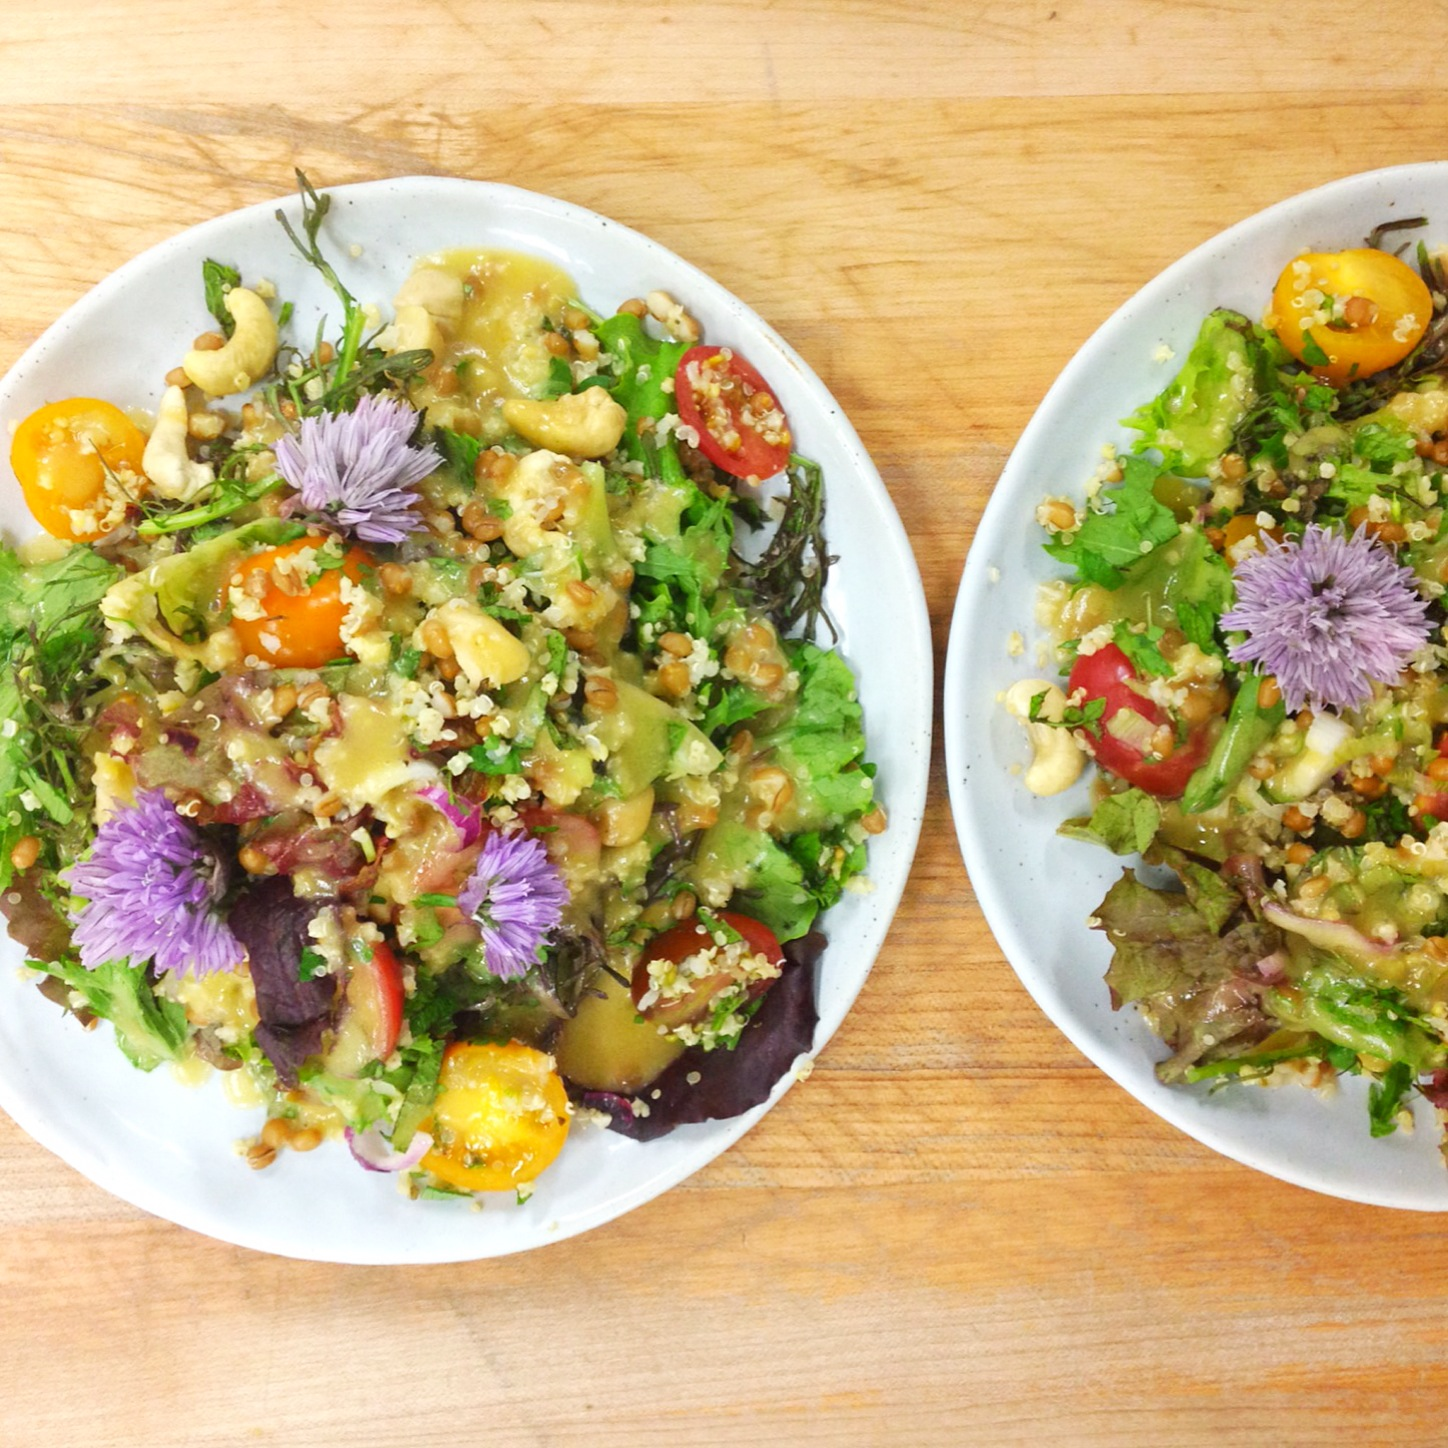 Spicy greens grain salad with chive blossoms